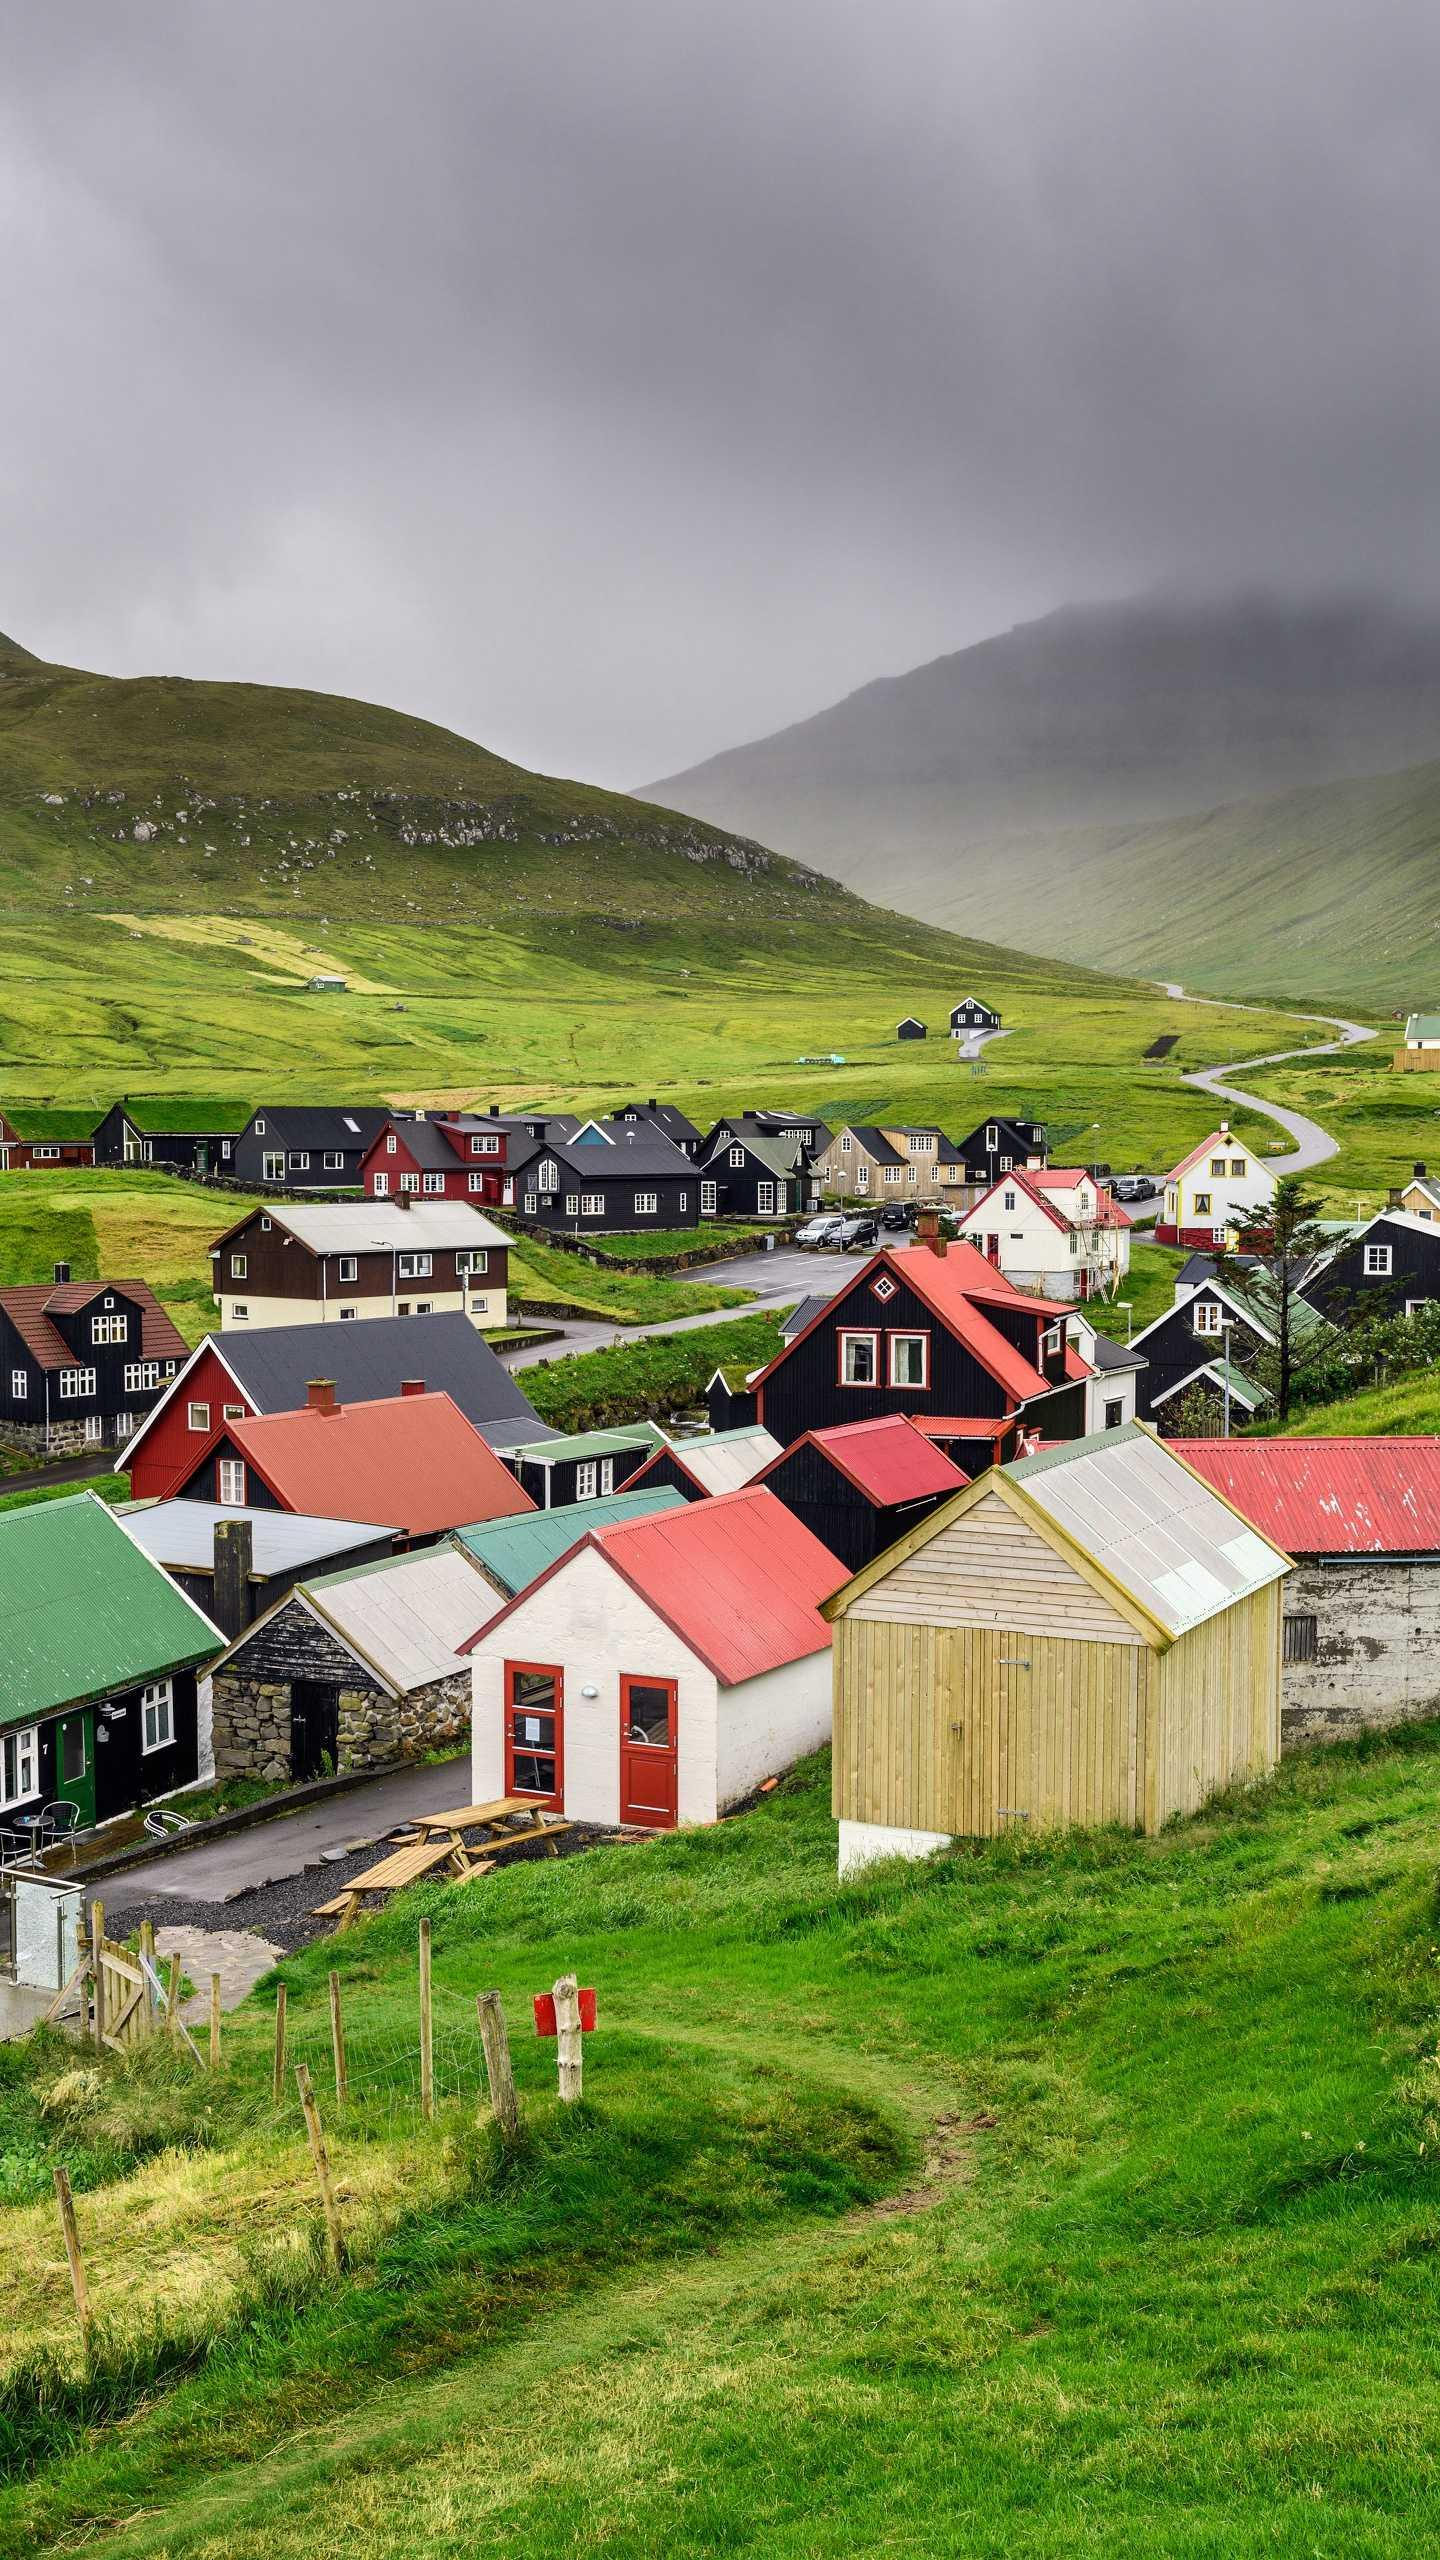 The Faroe Islands, the Faroe Islands, are located between the Norwegian Sea and the North Atlantic Ocean, halfway between Norway and Iceland.